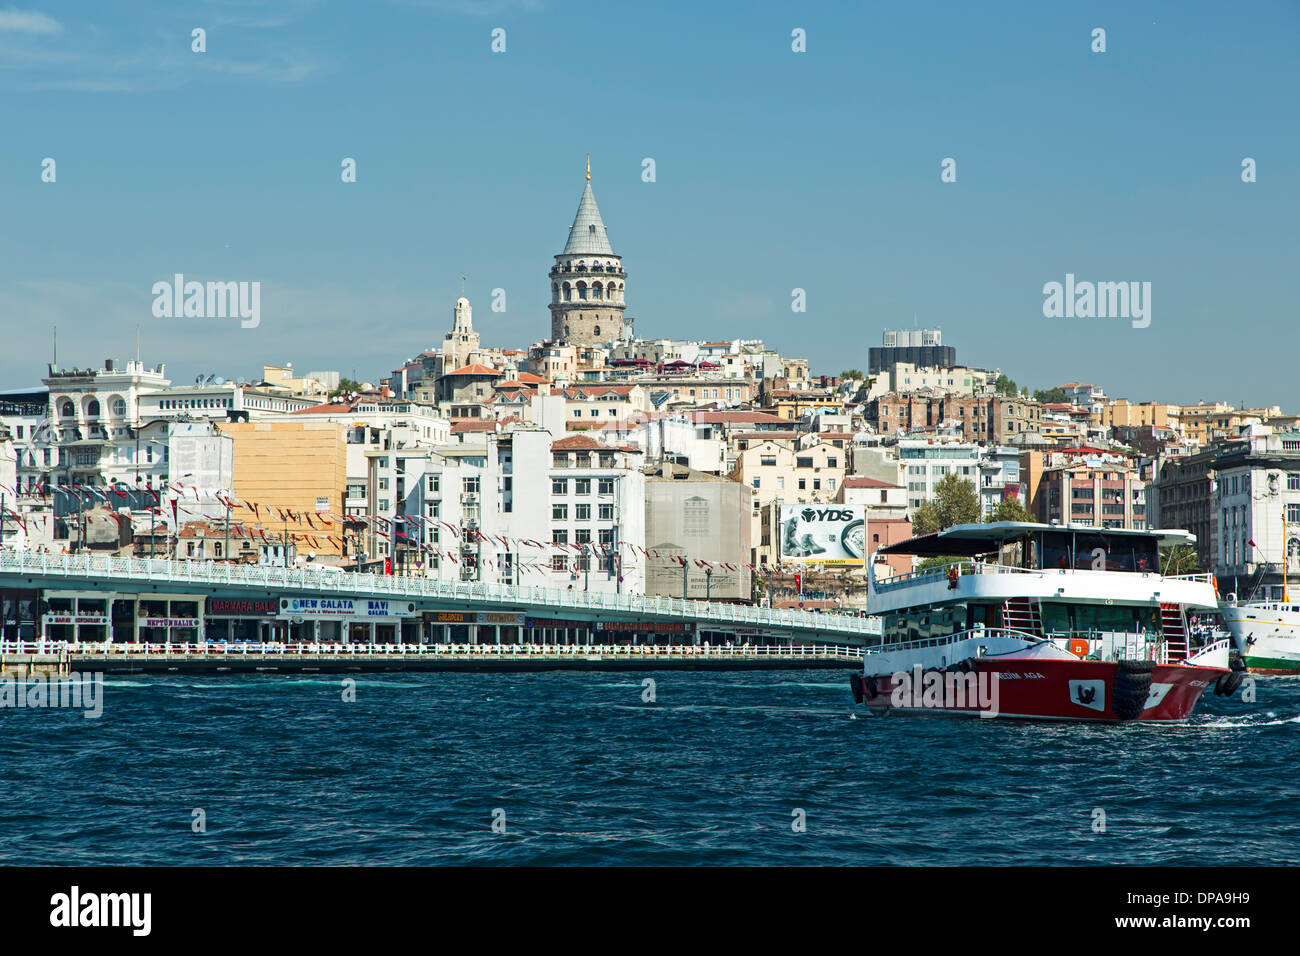 Ship on Golden Horn near Galata Bridge, Galata Tower in background, Istanbul, Turkey - Stock Image